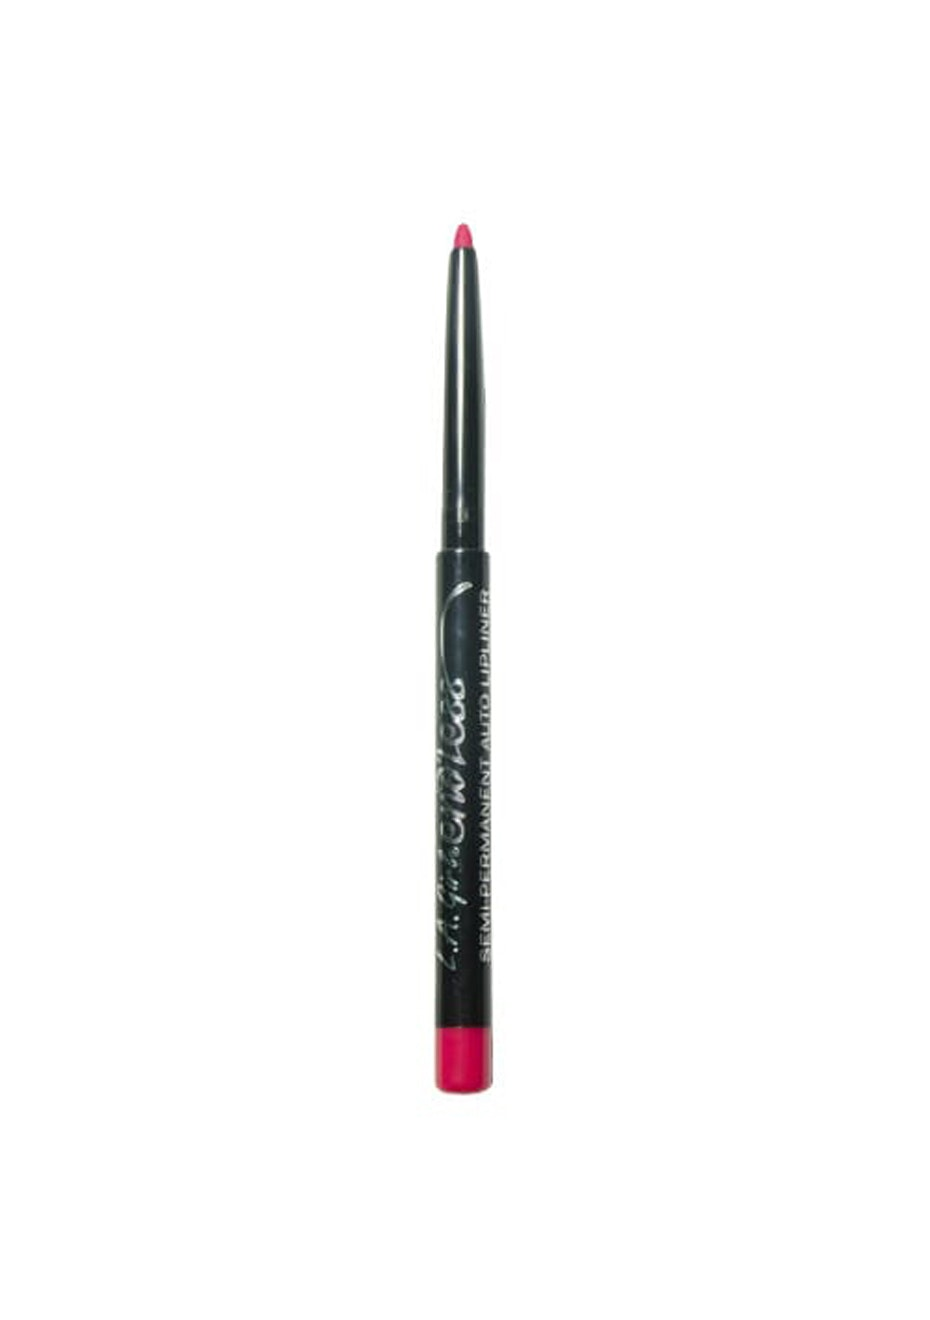 LA Girl Endless Auto Lipliner Pencil - Pink Parfait